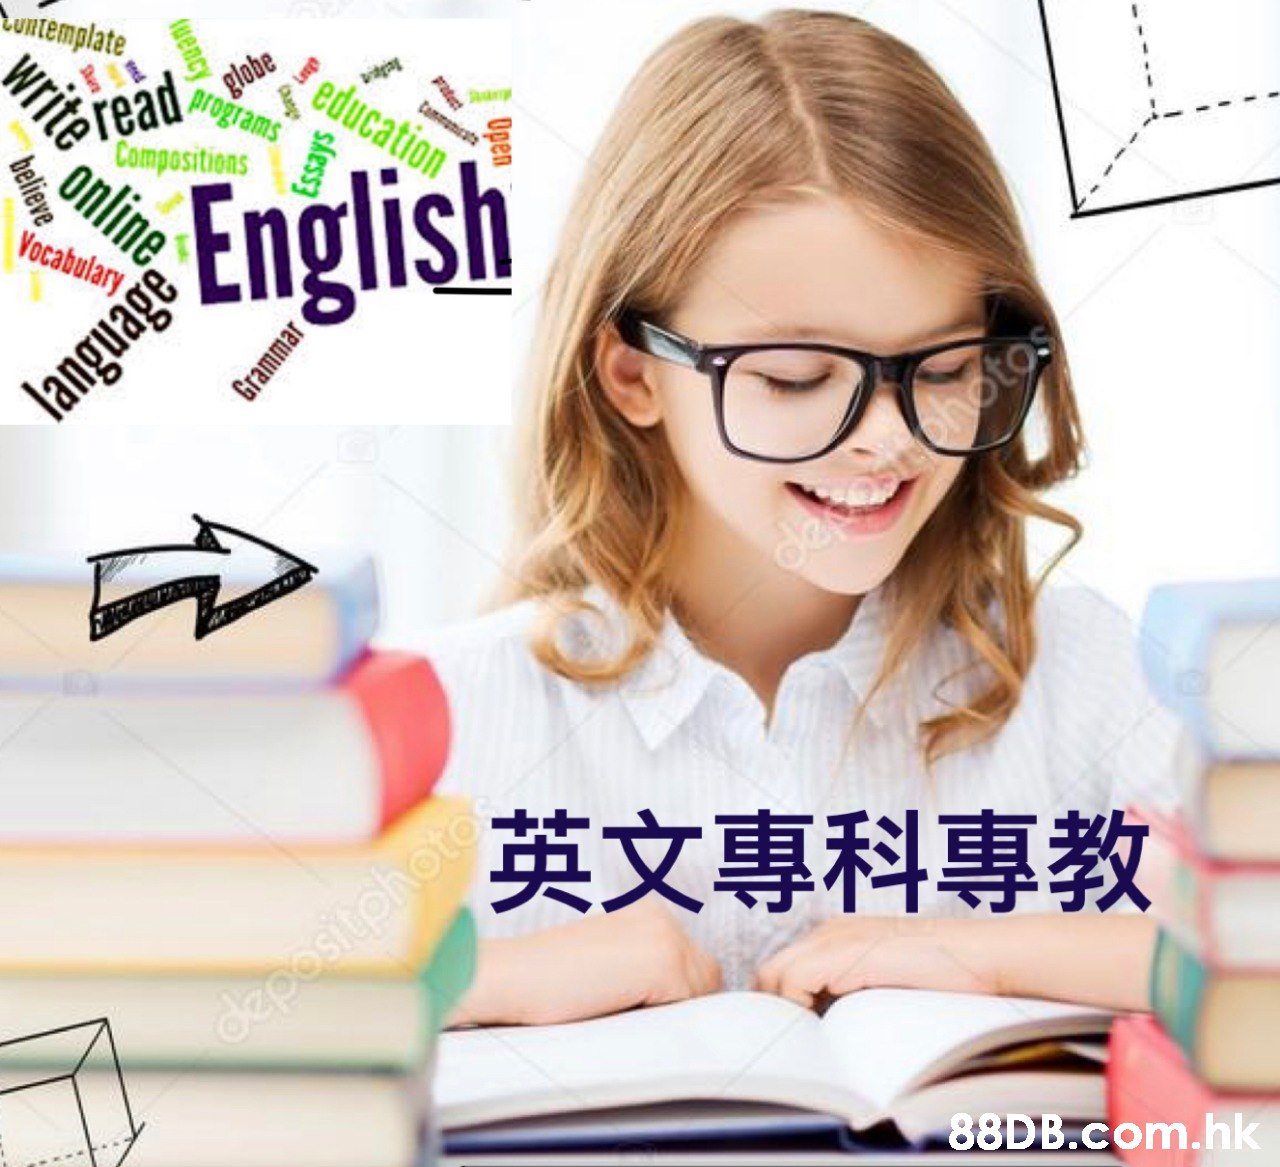 untemplate read globe Compositions programs catio Commact English Vocabulary guage desabohotos 英文專科專教 hote depositphoto. .hk Open uency Essays write online ima  Glasses,Eyewear,Cartoon,Font,Learning